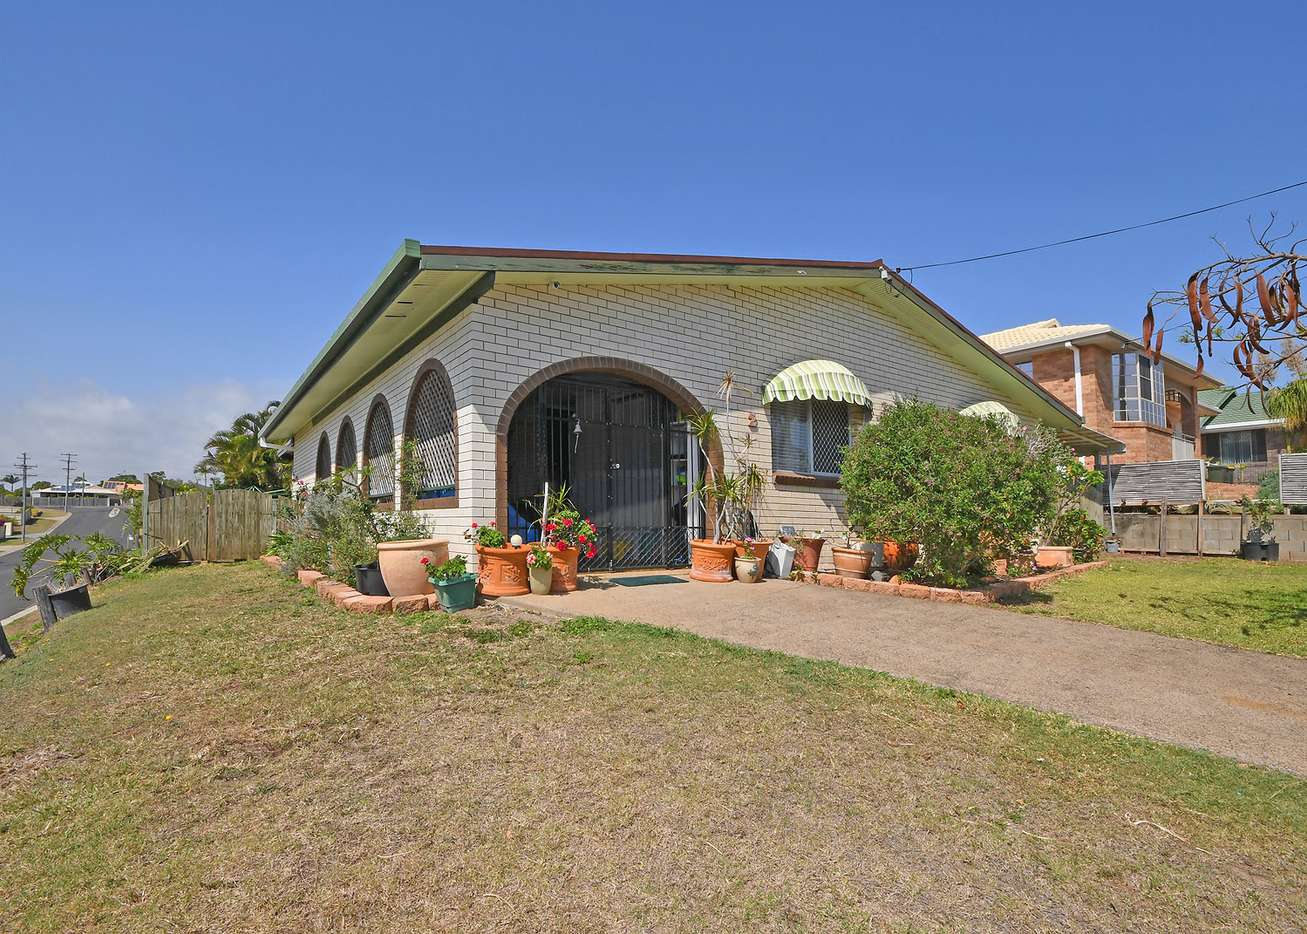 Main view of Homely house listing, 2 Ungowa Ave, Pialba, QLD 4655